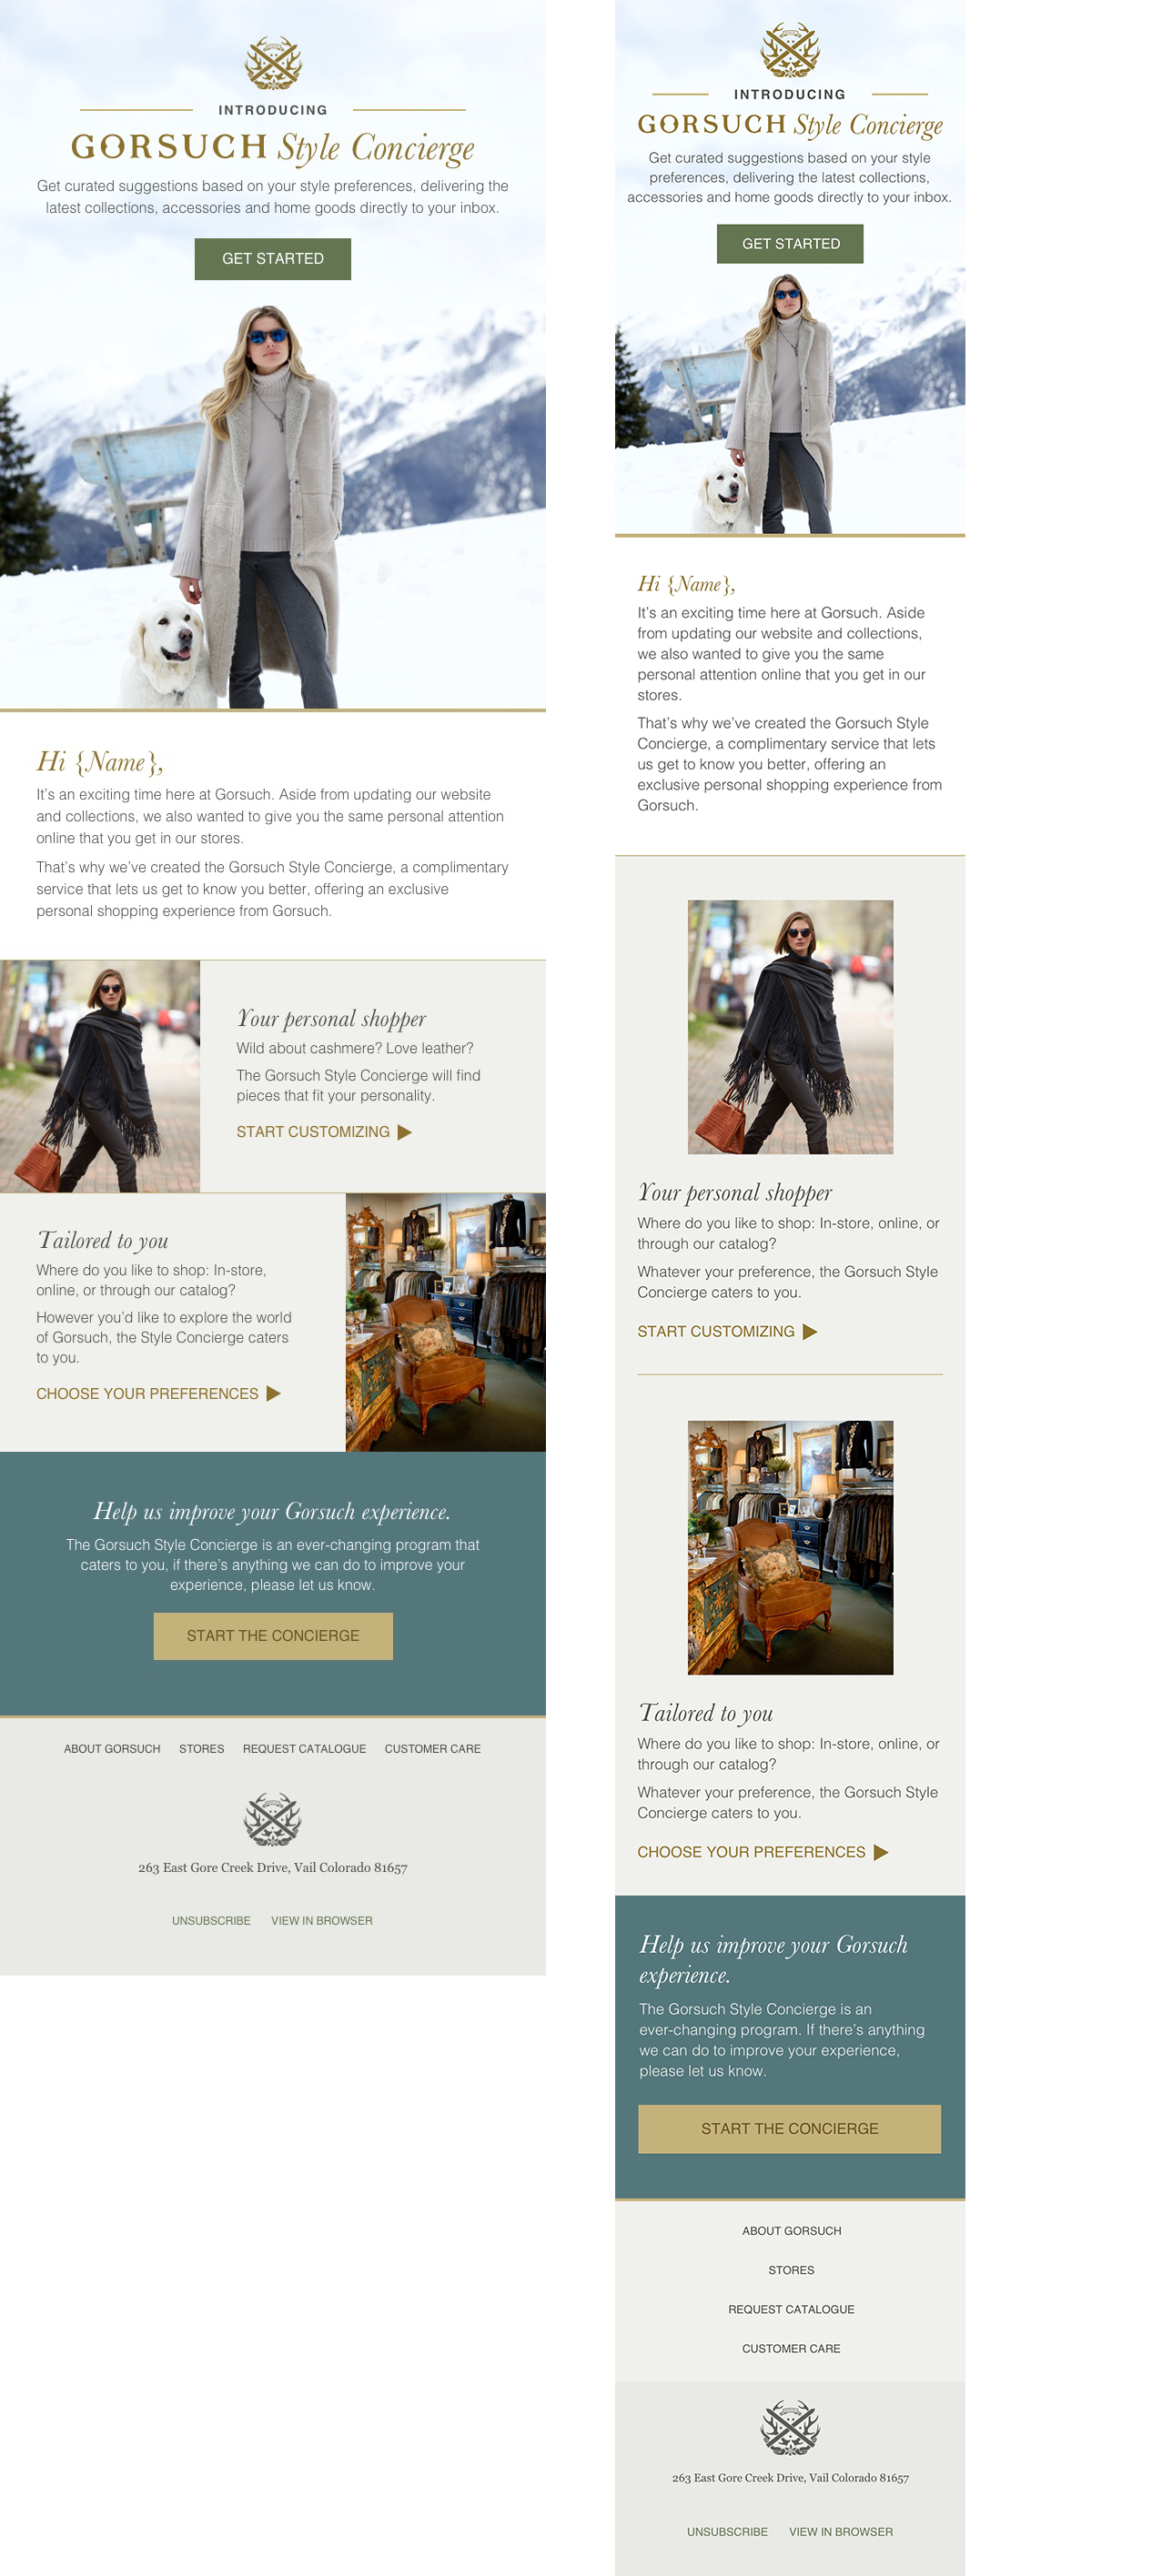 Gorsuch Style Concierge email design